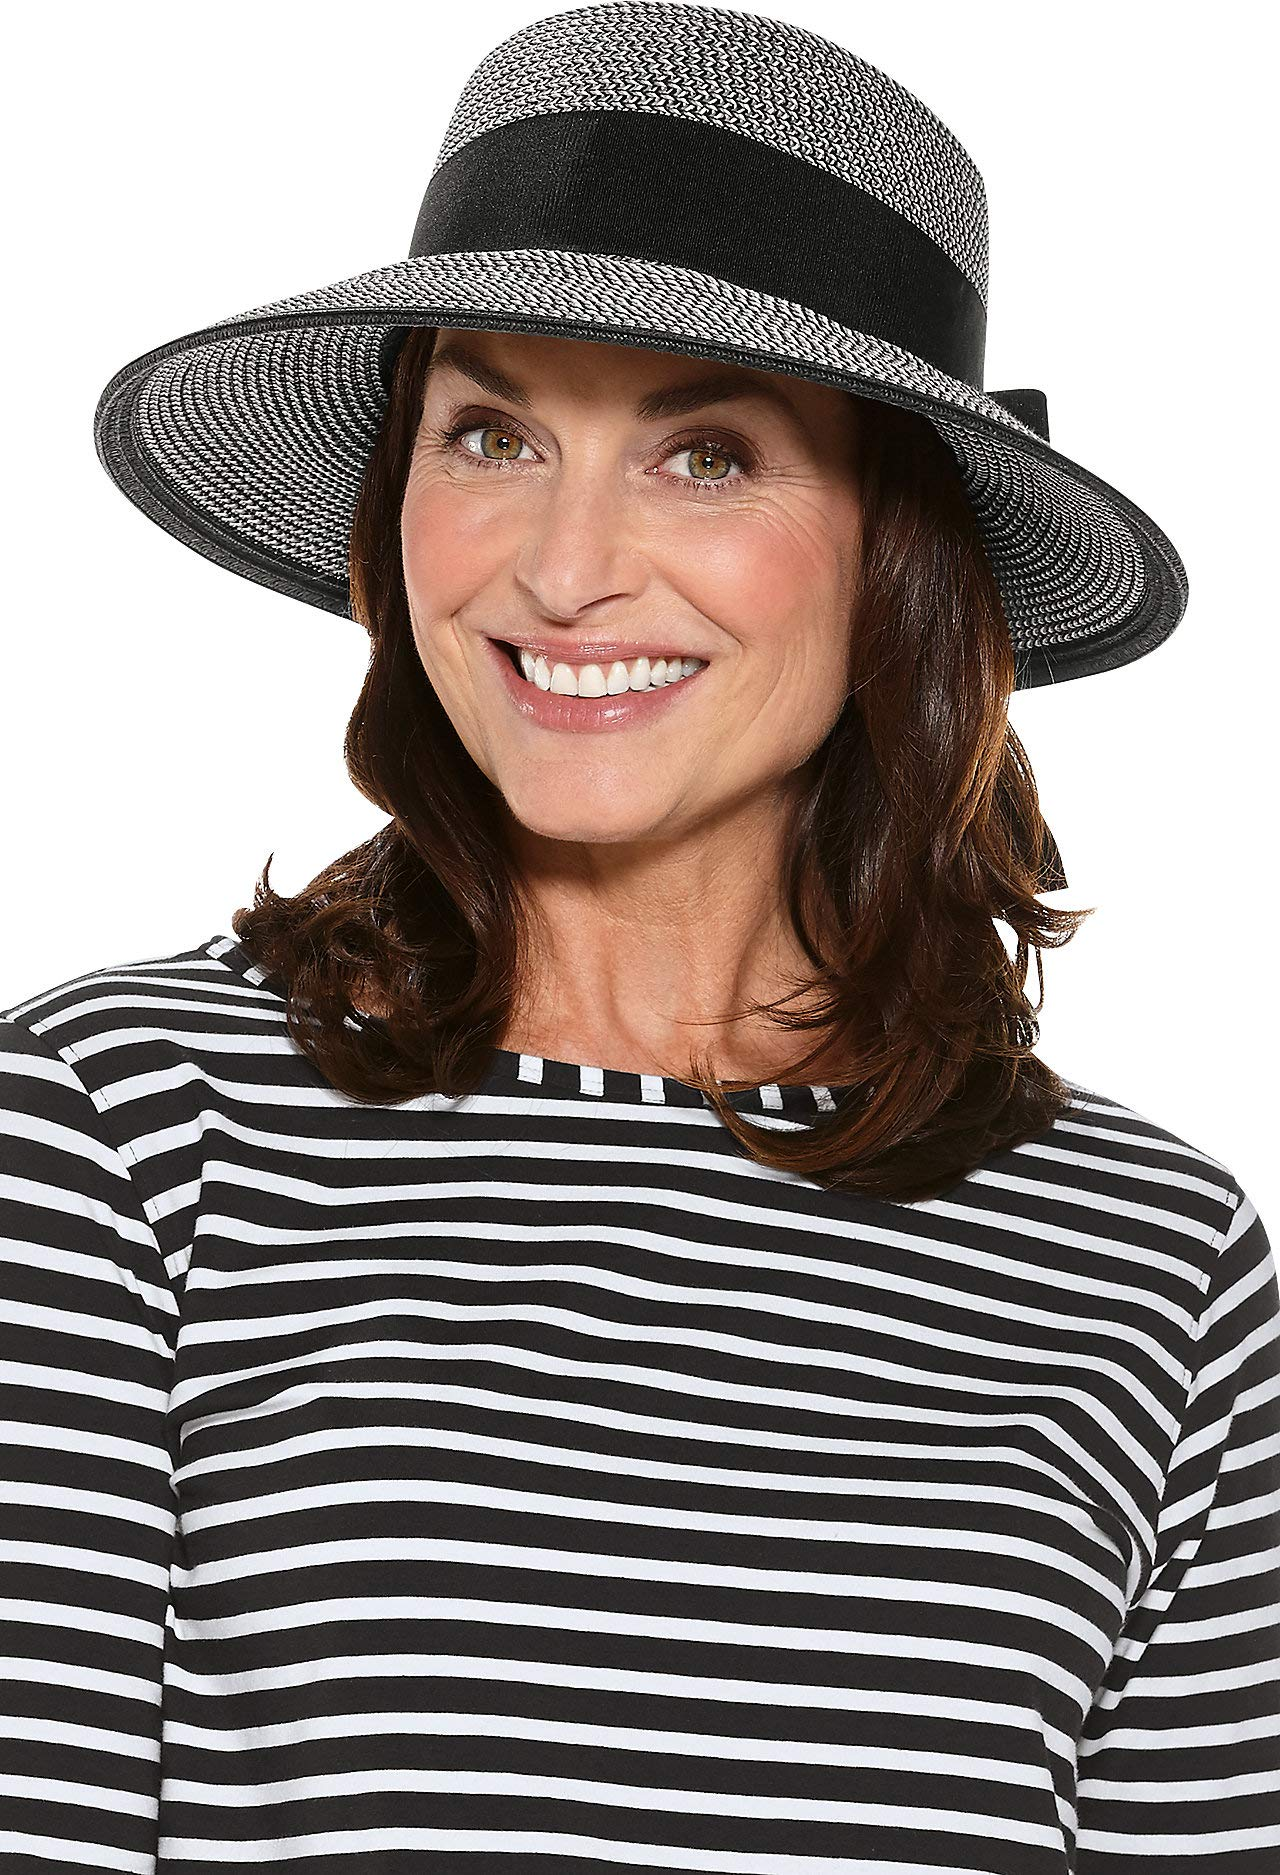 Coolibar UPF 50+ Women's Asymmetrical Clara Sun Hat - Sun Protective (One Size- Black/Ivory Colorblock)